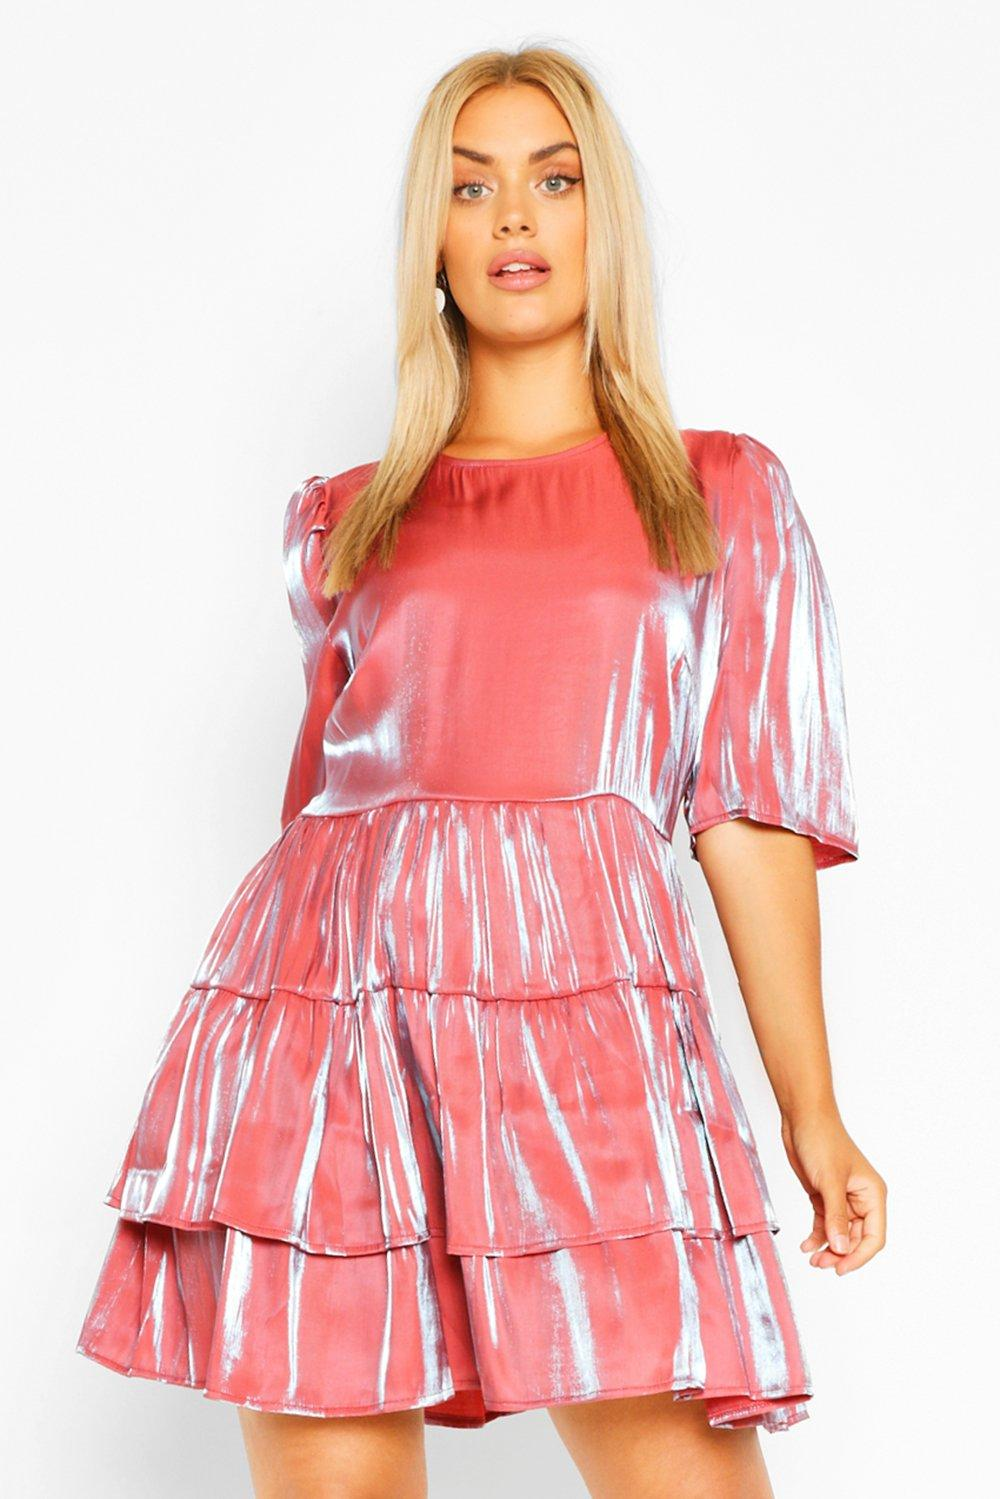 80s Dresses | Casual to Party Dresses Womens Plus Satin Ruched Ruffle Skater Dress - Red - 16 $24.00 AT vintagedancer.com